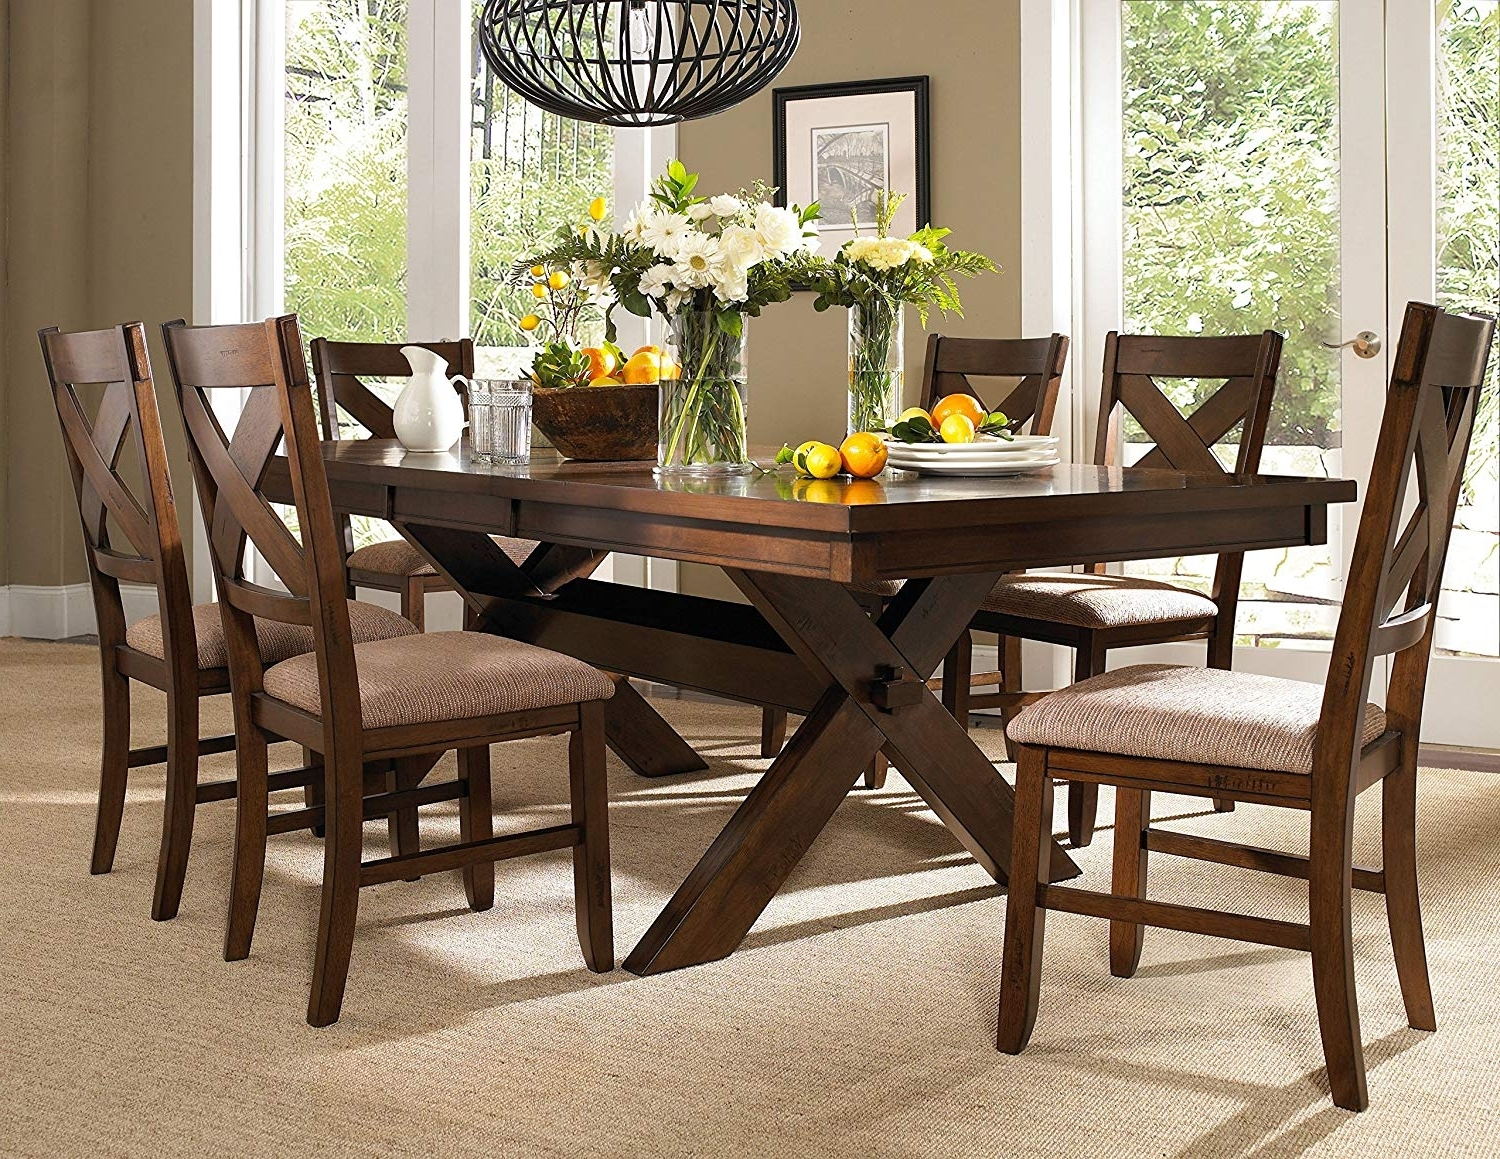 Well Liked 6 Chair Dining Table Sets Within Amazon – Powell 713 417M2 7 Piece Wooden Kraven Dining Set (View 12 of 25)